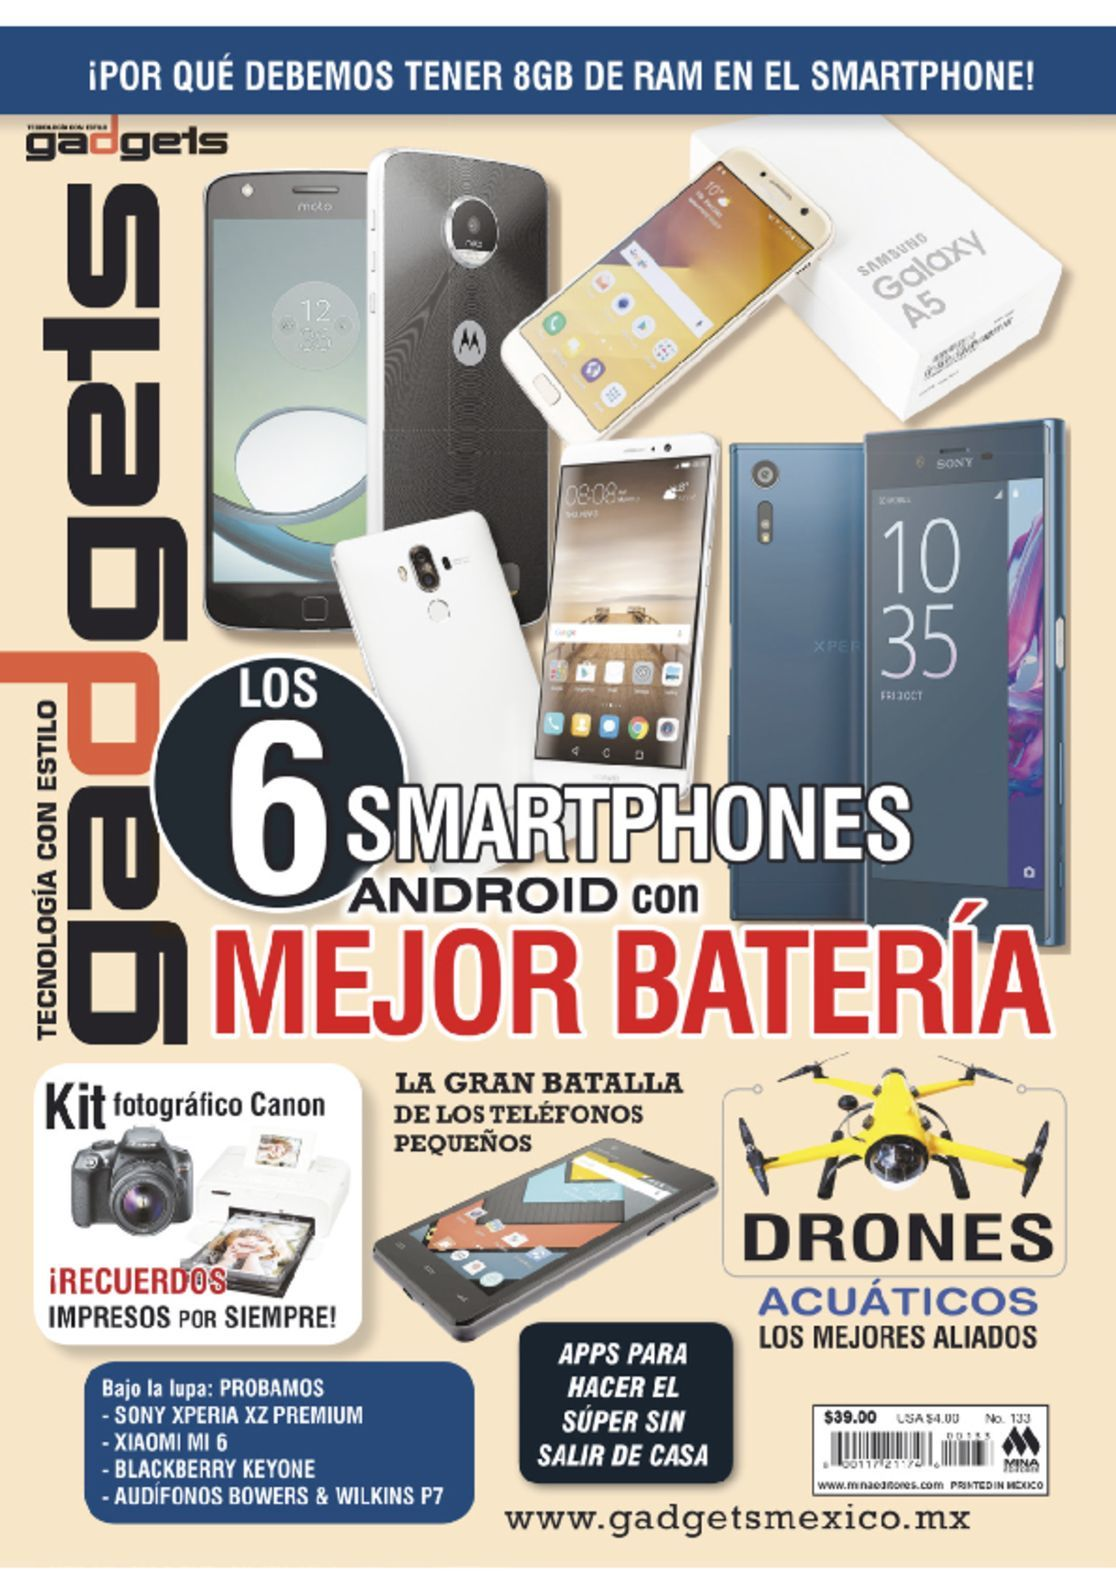 Gadgets Digital